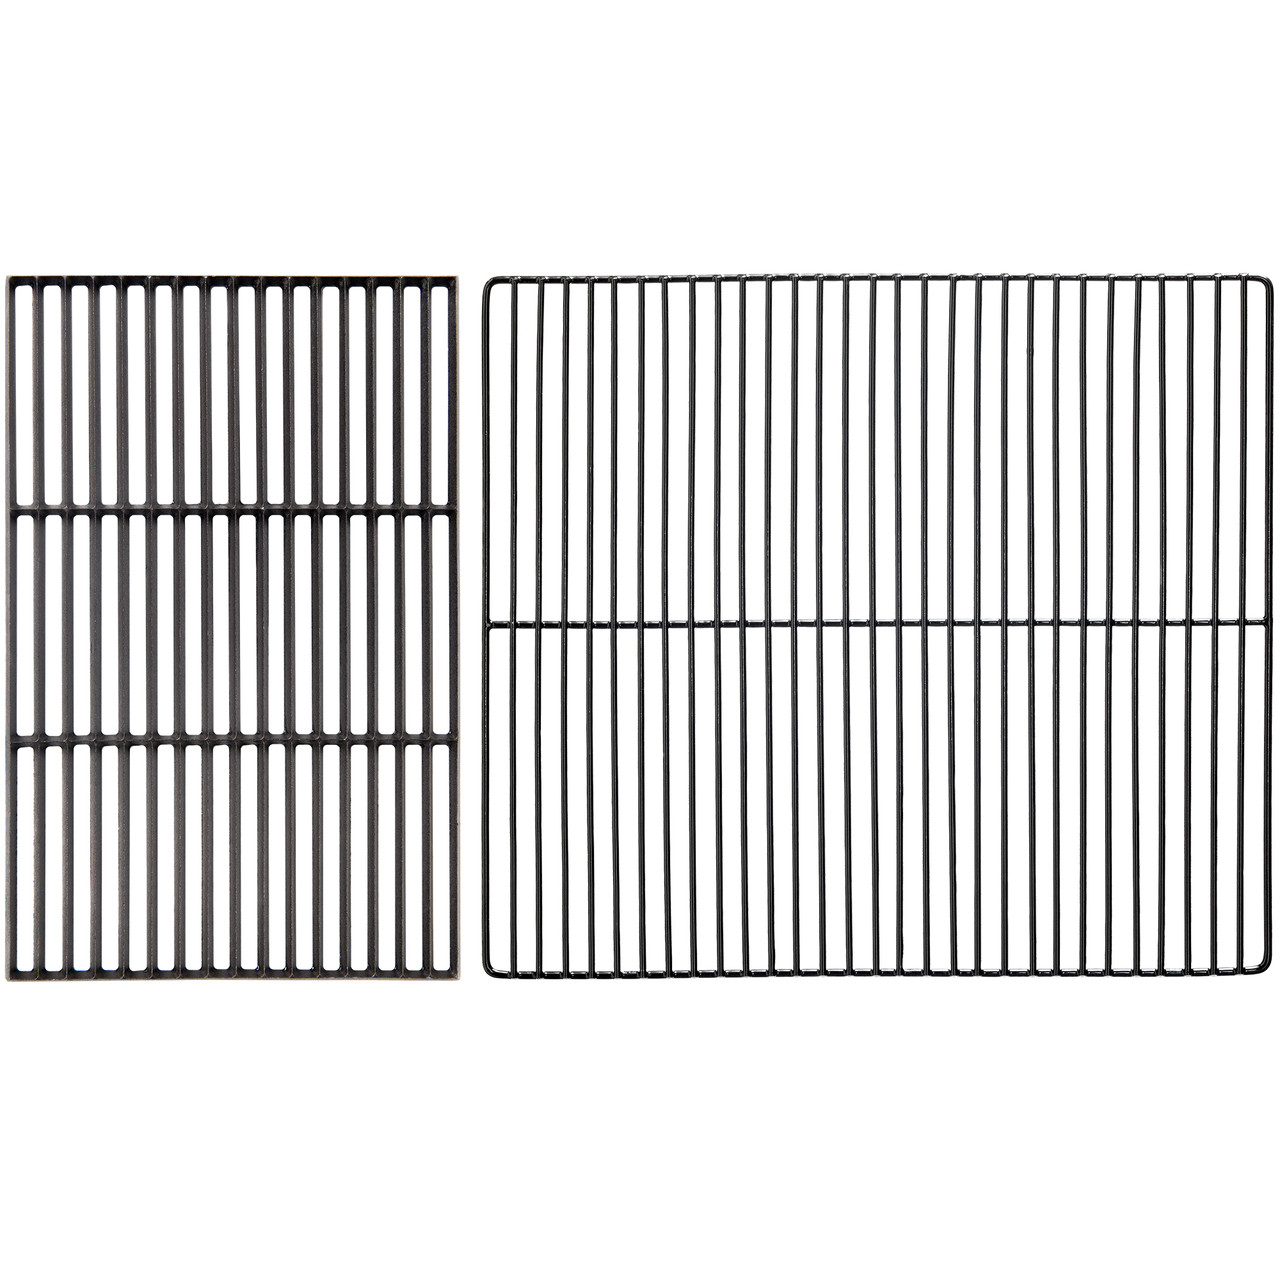 BAC367 TRAEGER GRILLS CAST IRON/PORCELAIN GRILL GRATE KIT - 34 SERIES